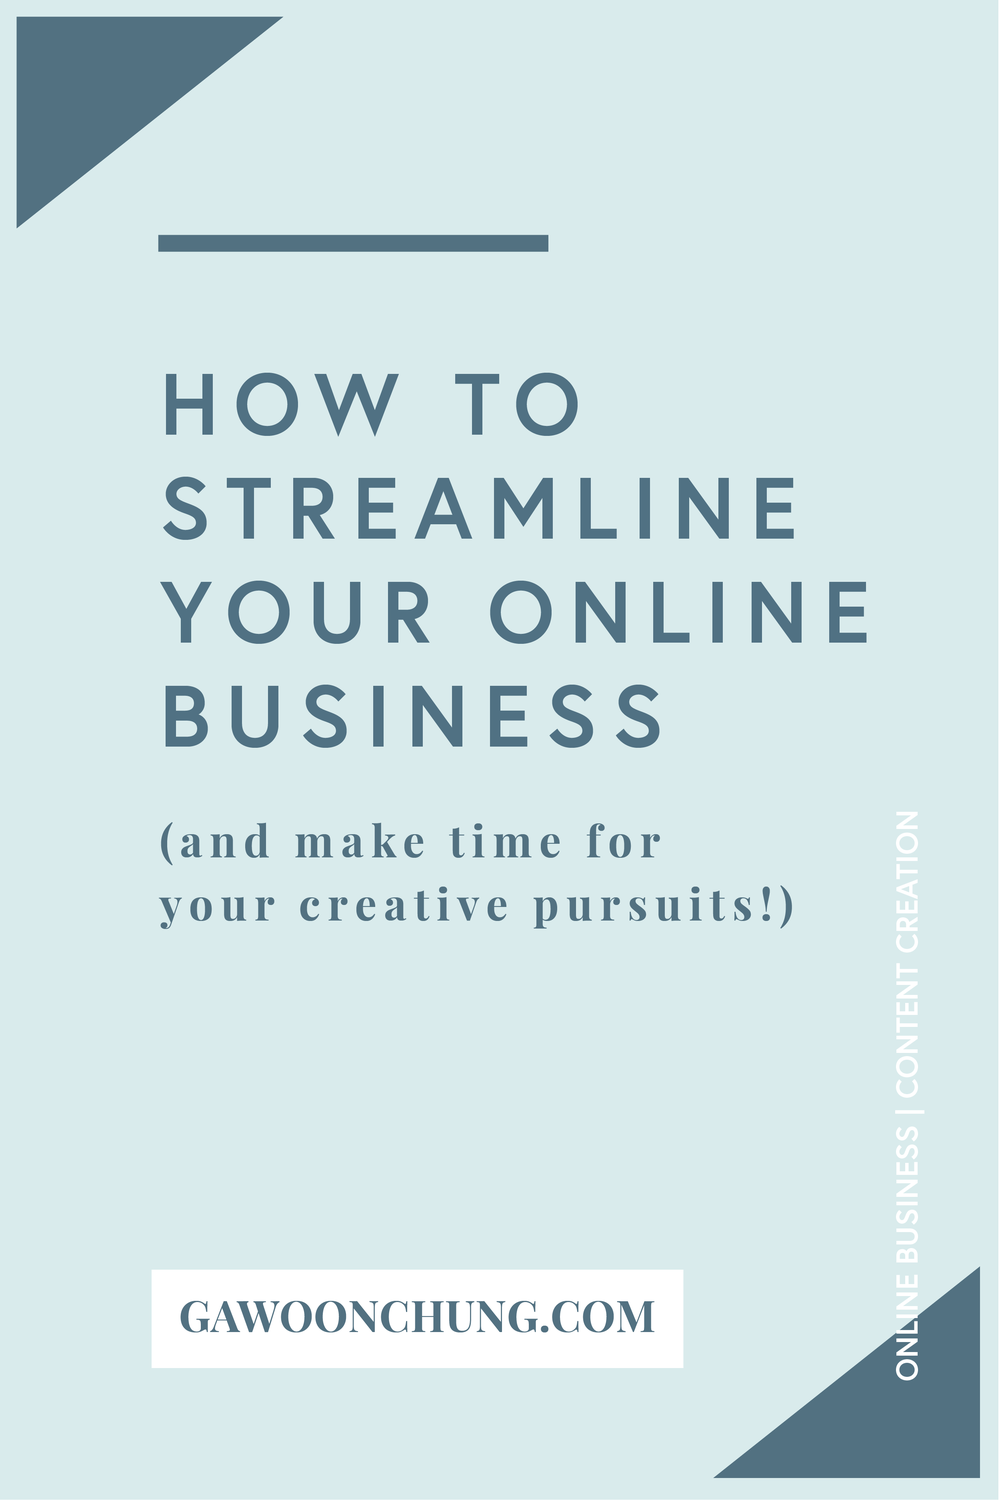 streamlinebusiness.png